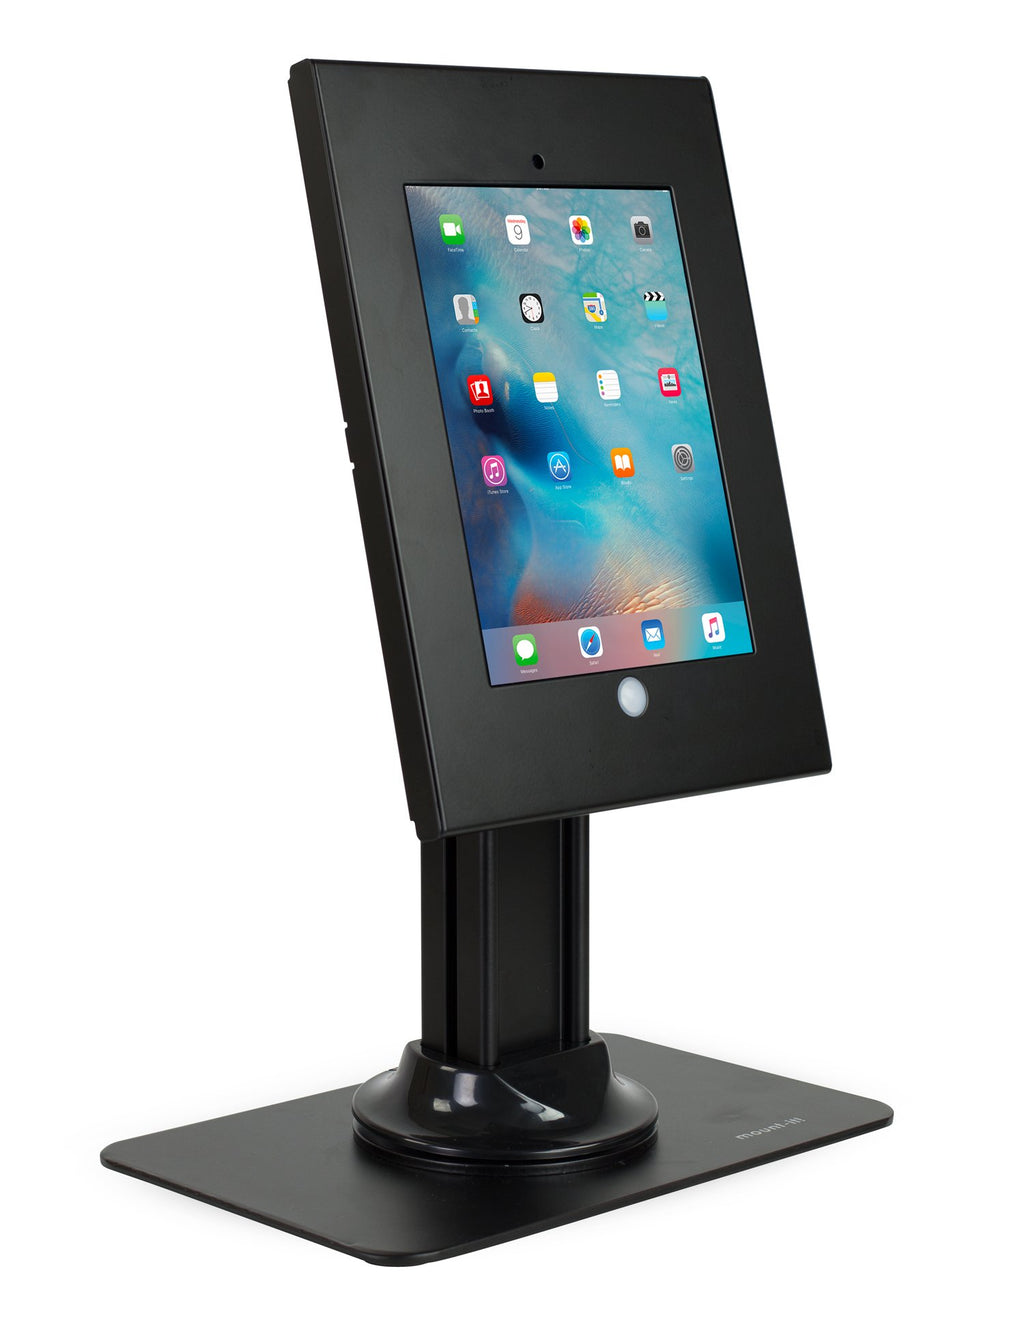 Secure iPad Enclosure Counter-top Kiosk, Fits all iPad 9.7 inch, Black - MI-3771B